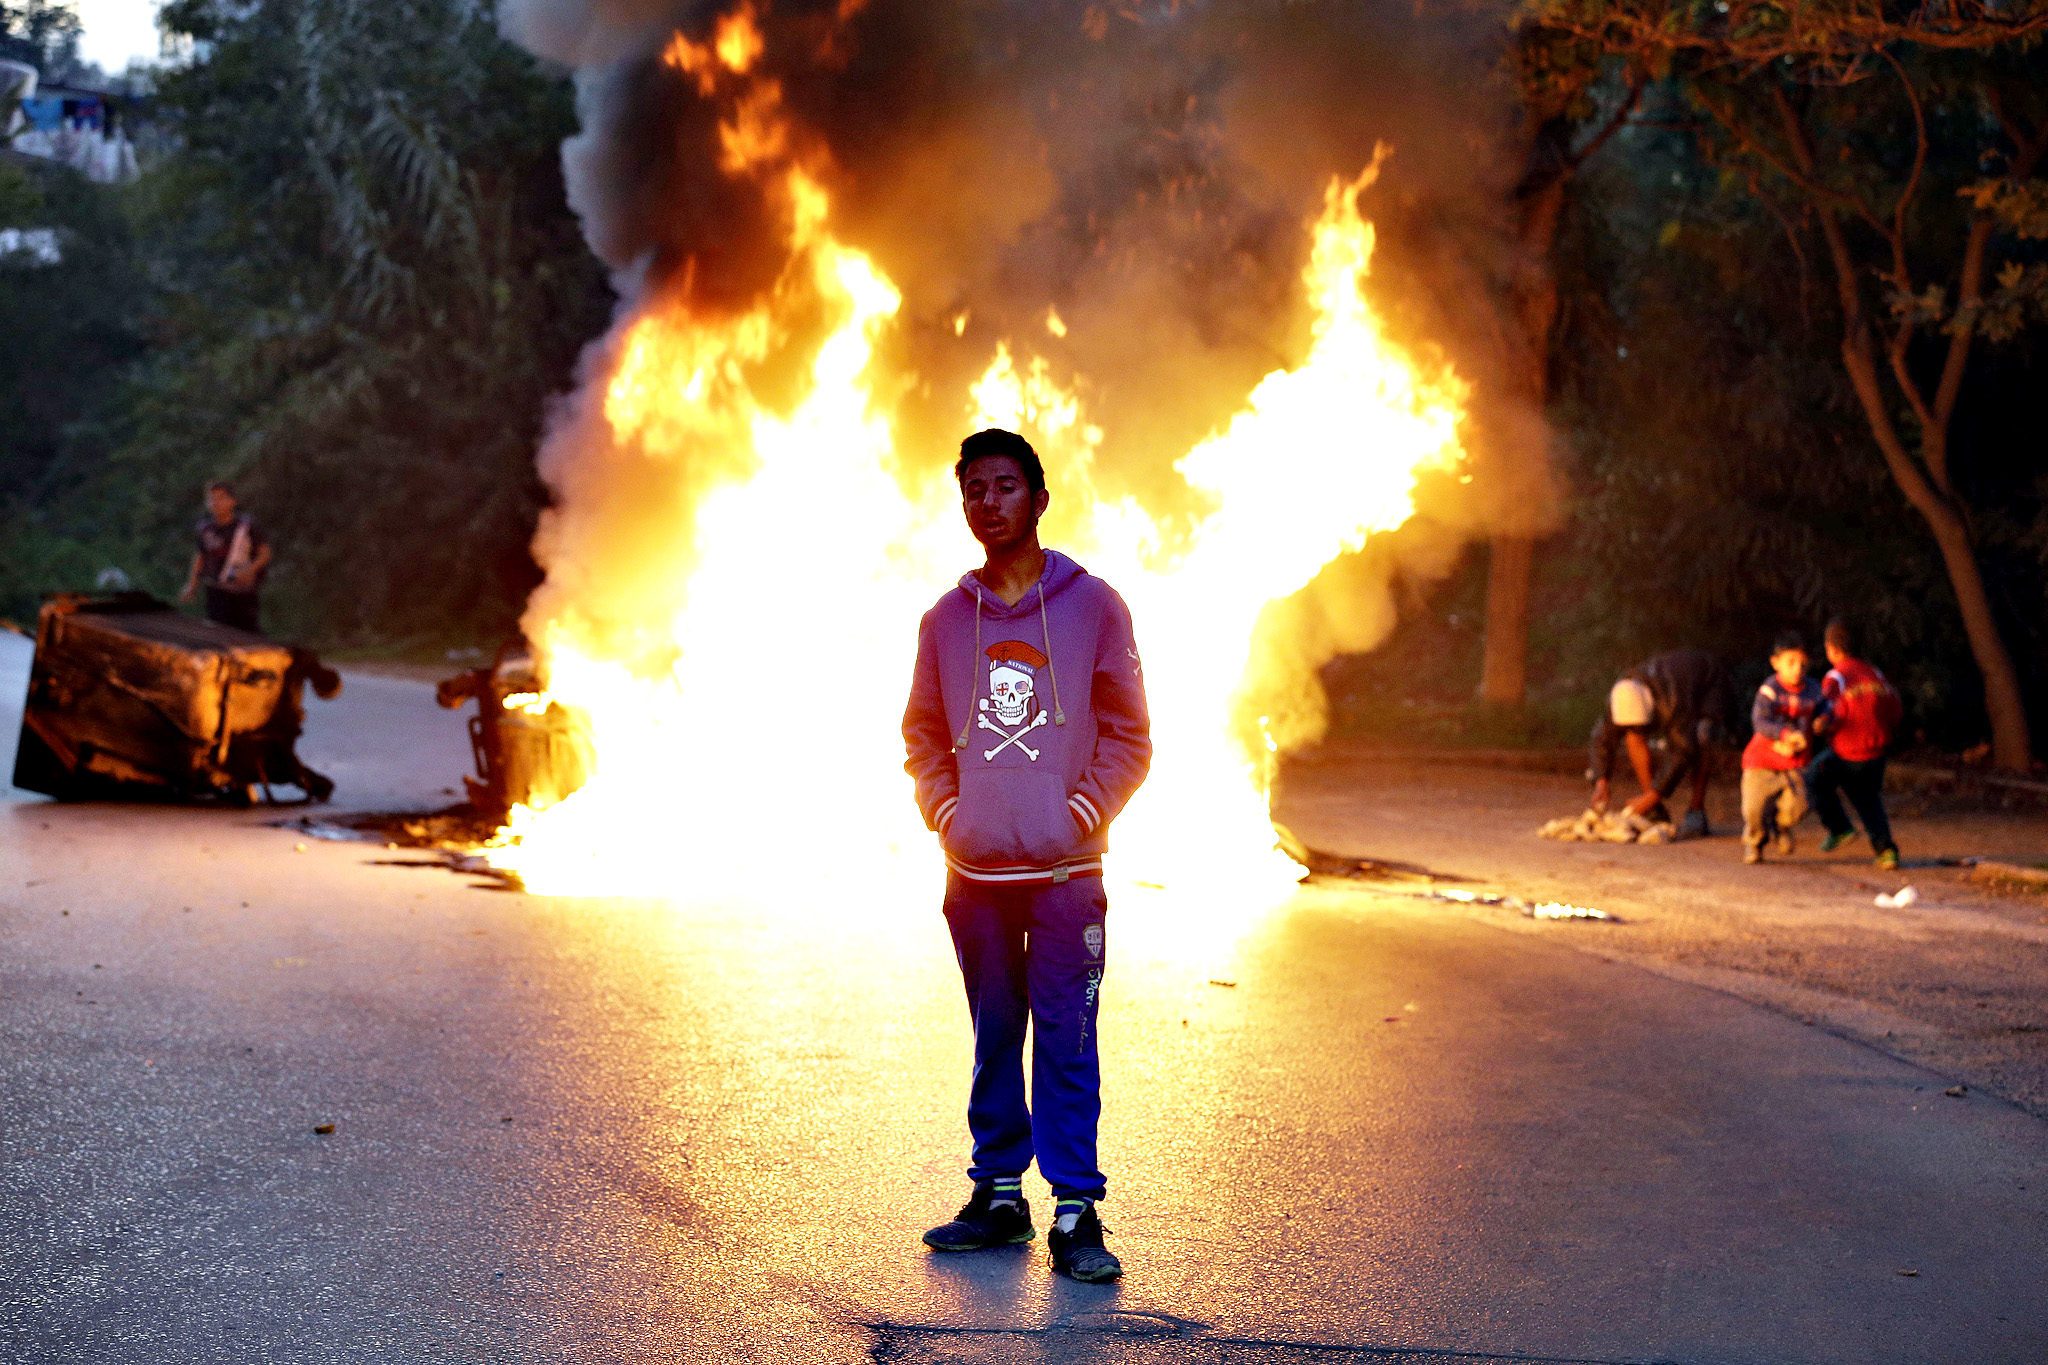 A young Roma man stands next to a burning barricade during a protest in Athens on Tuesday, Sept. 30, 2014.  The Greek Roma community, protesting authorities' plans to demolish their illegal settlement and move them to a remote spot in the countryside, blocked a main northern Athens avenue for hours Tuesday, using rubbish bins that they then set on fire. Eventually, a compromise was reached whereby a few uninhabited shacks will be knocked down, and the rest will stay in place pending a final agreement on relocating the Roma.